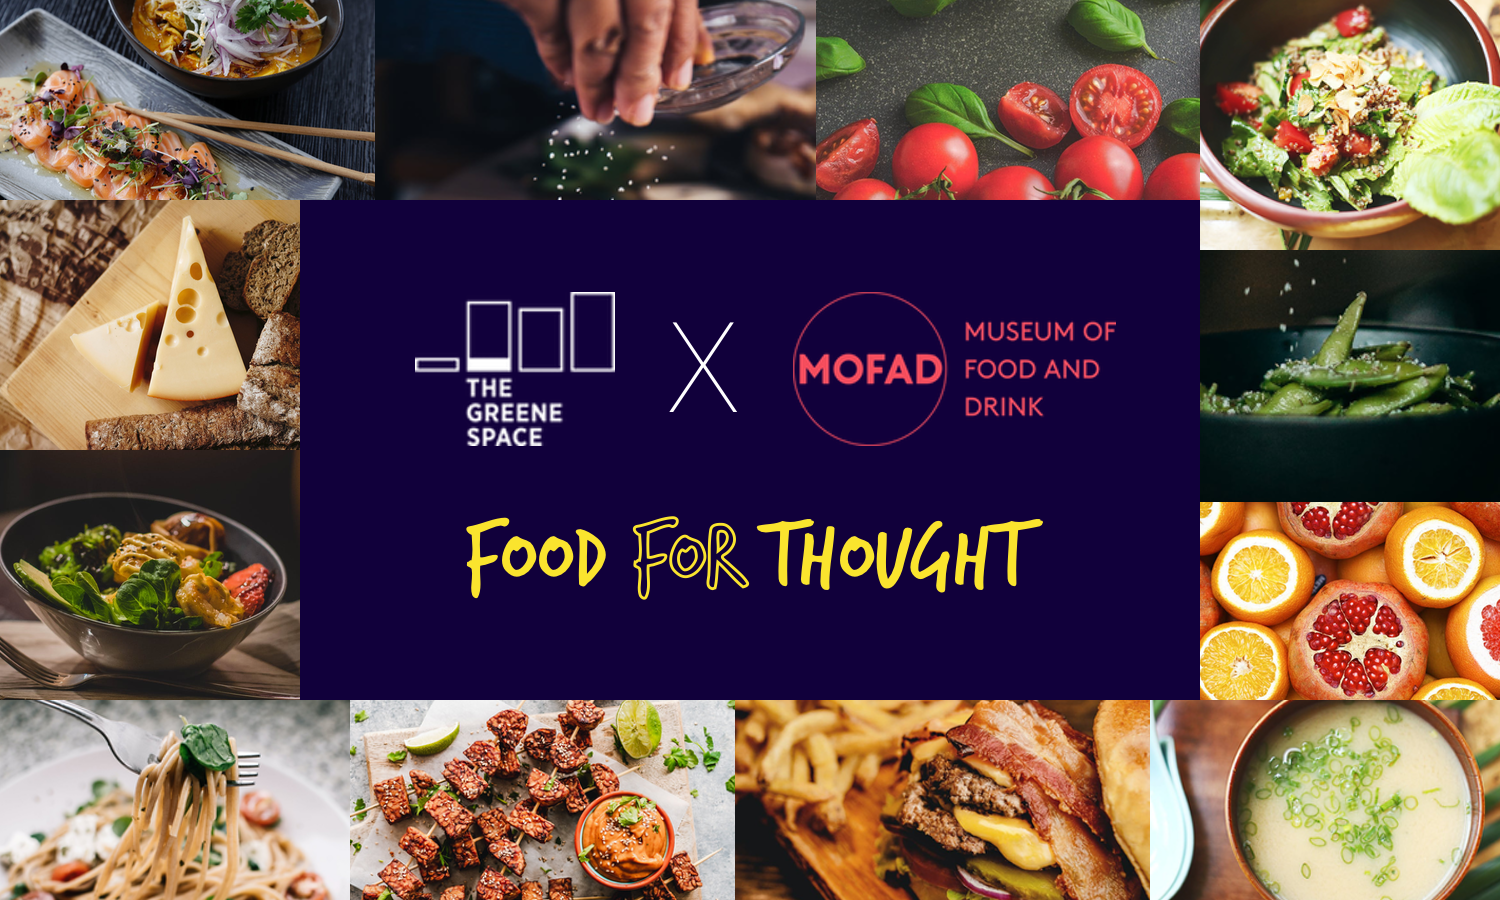 Food for Thought | Presented by The Greene Space x MoFAD